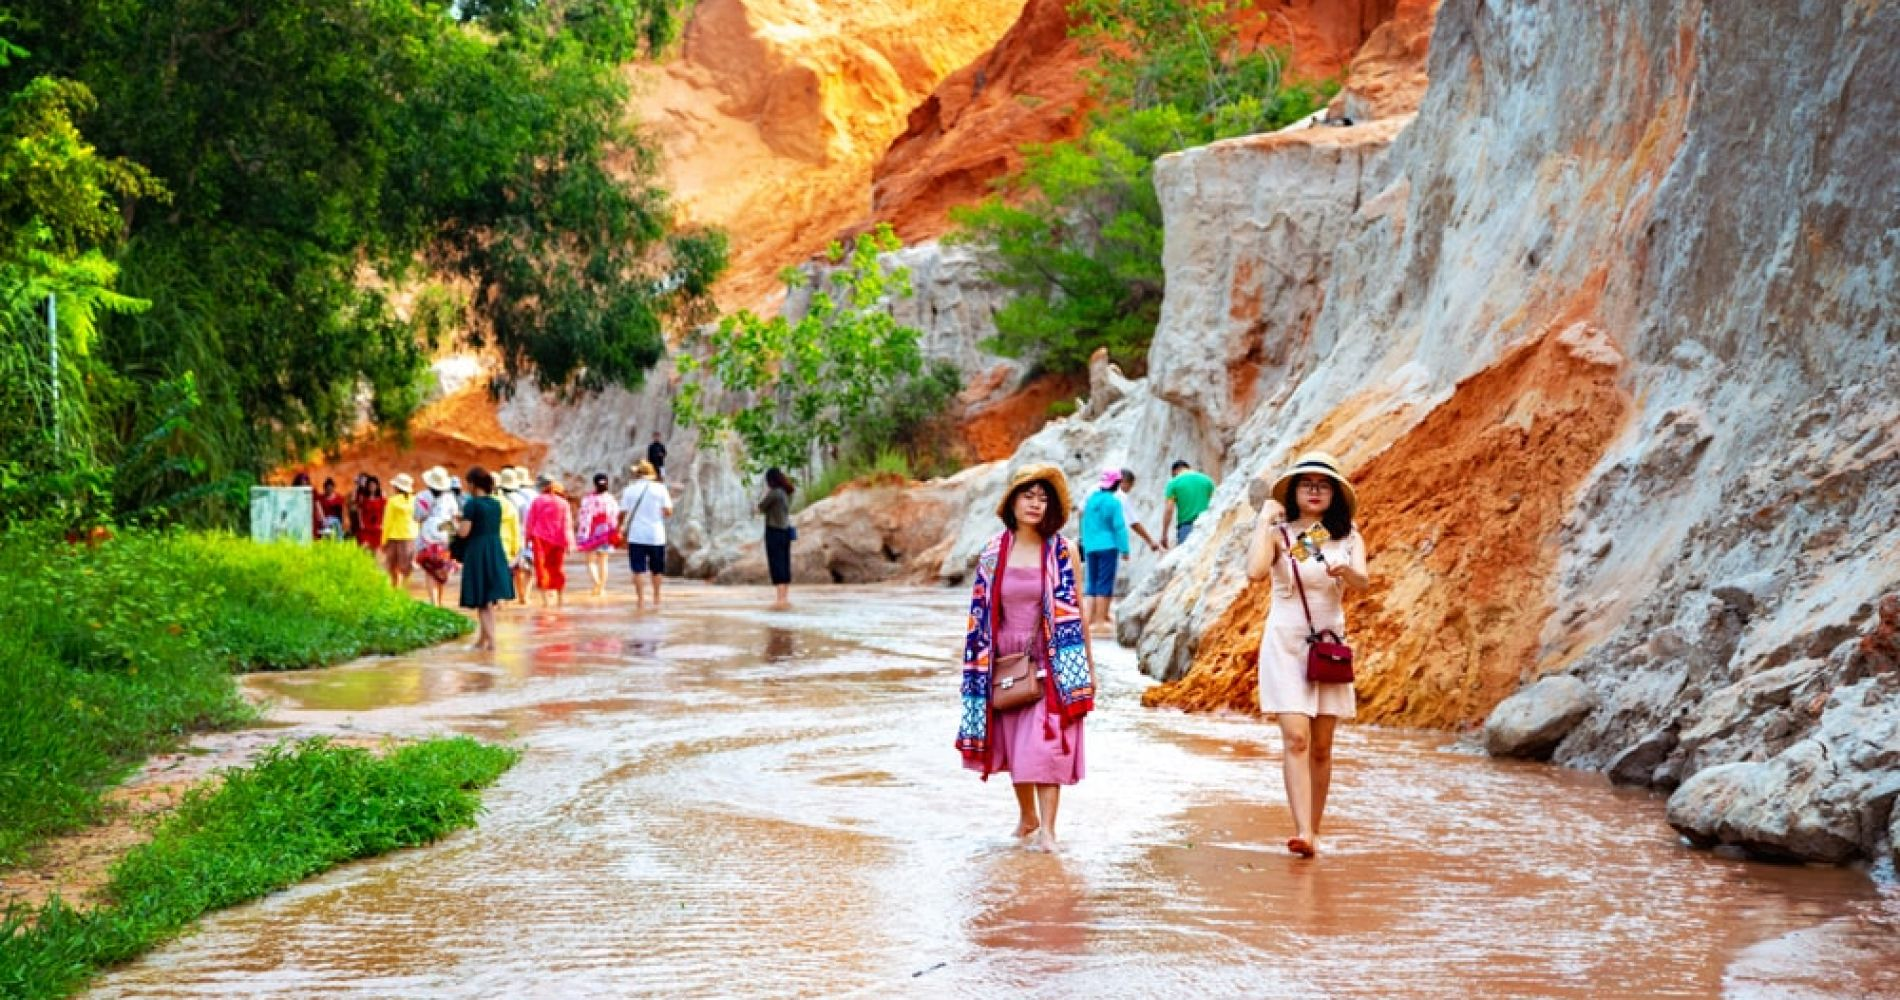 Explore a refreshing Fairy Stream Red Canyon in Muine, Vietnam